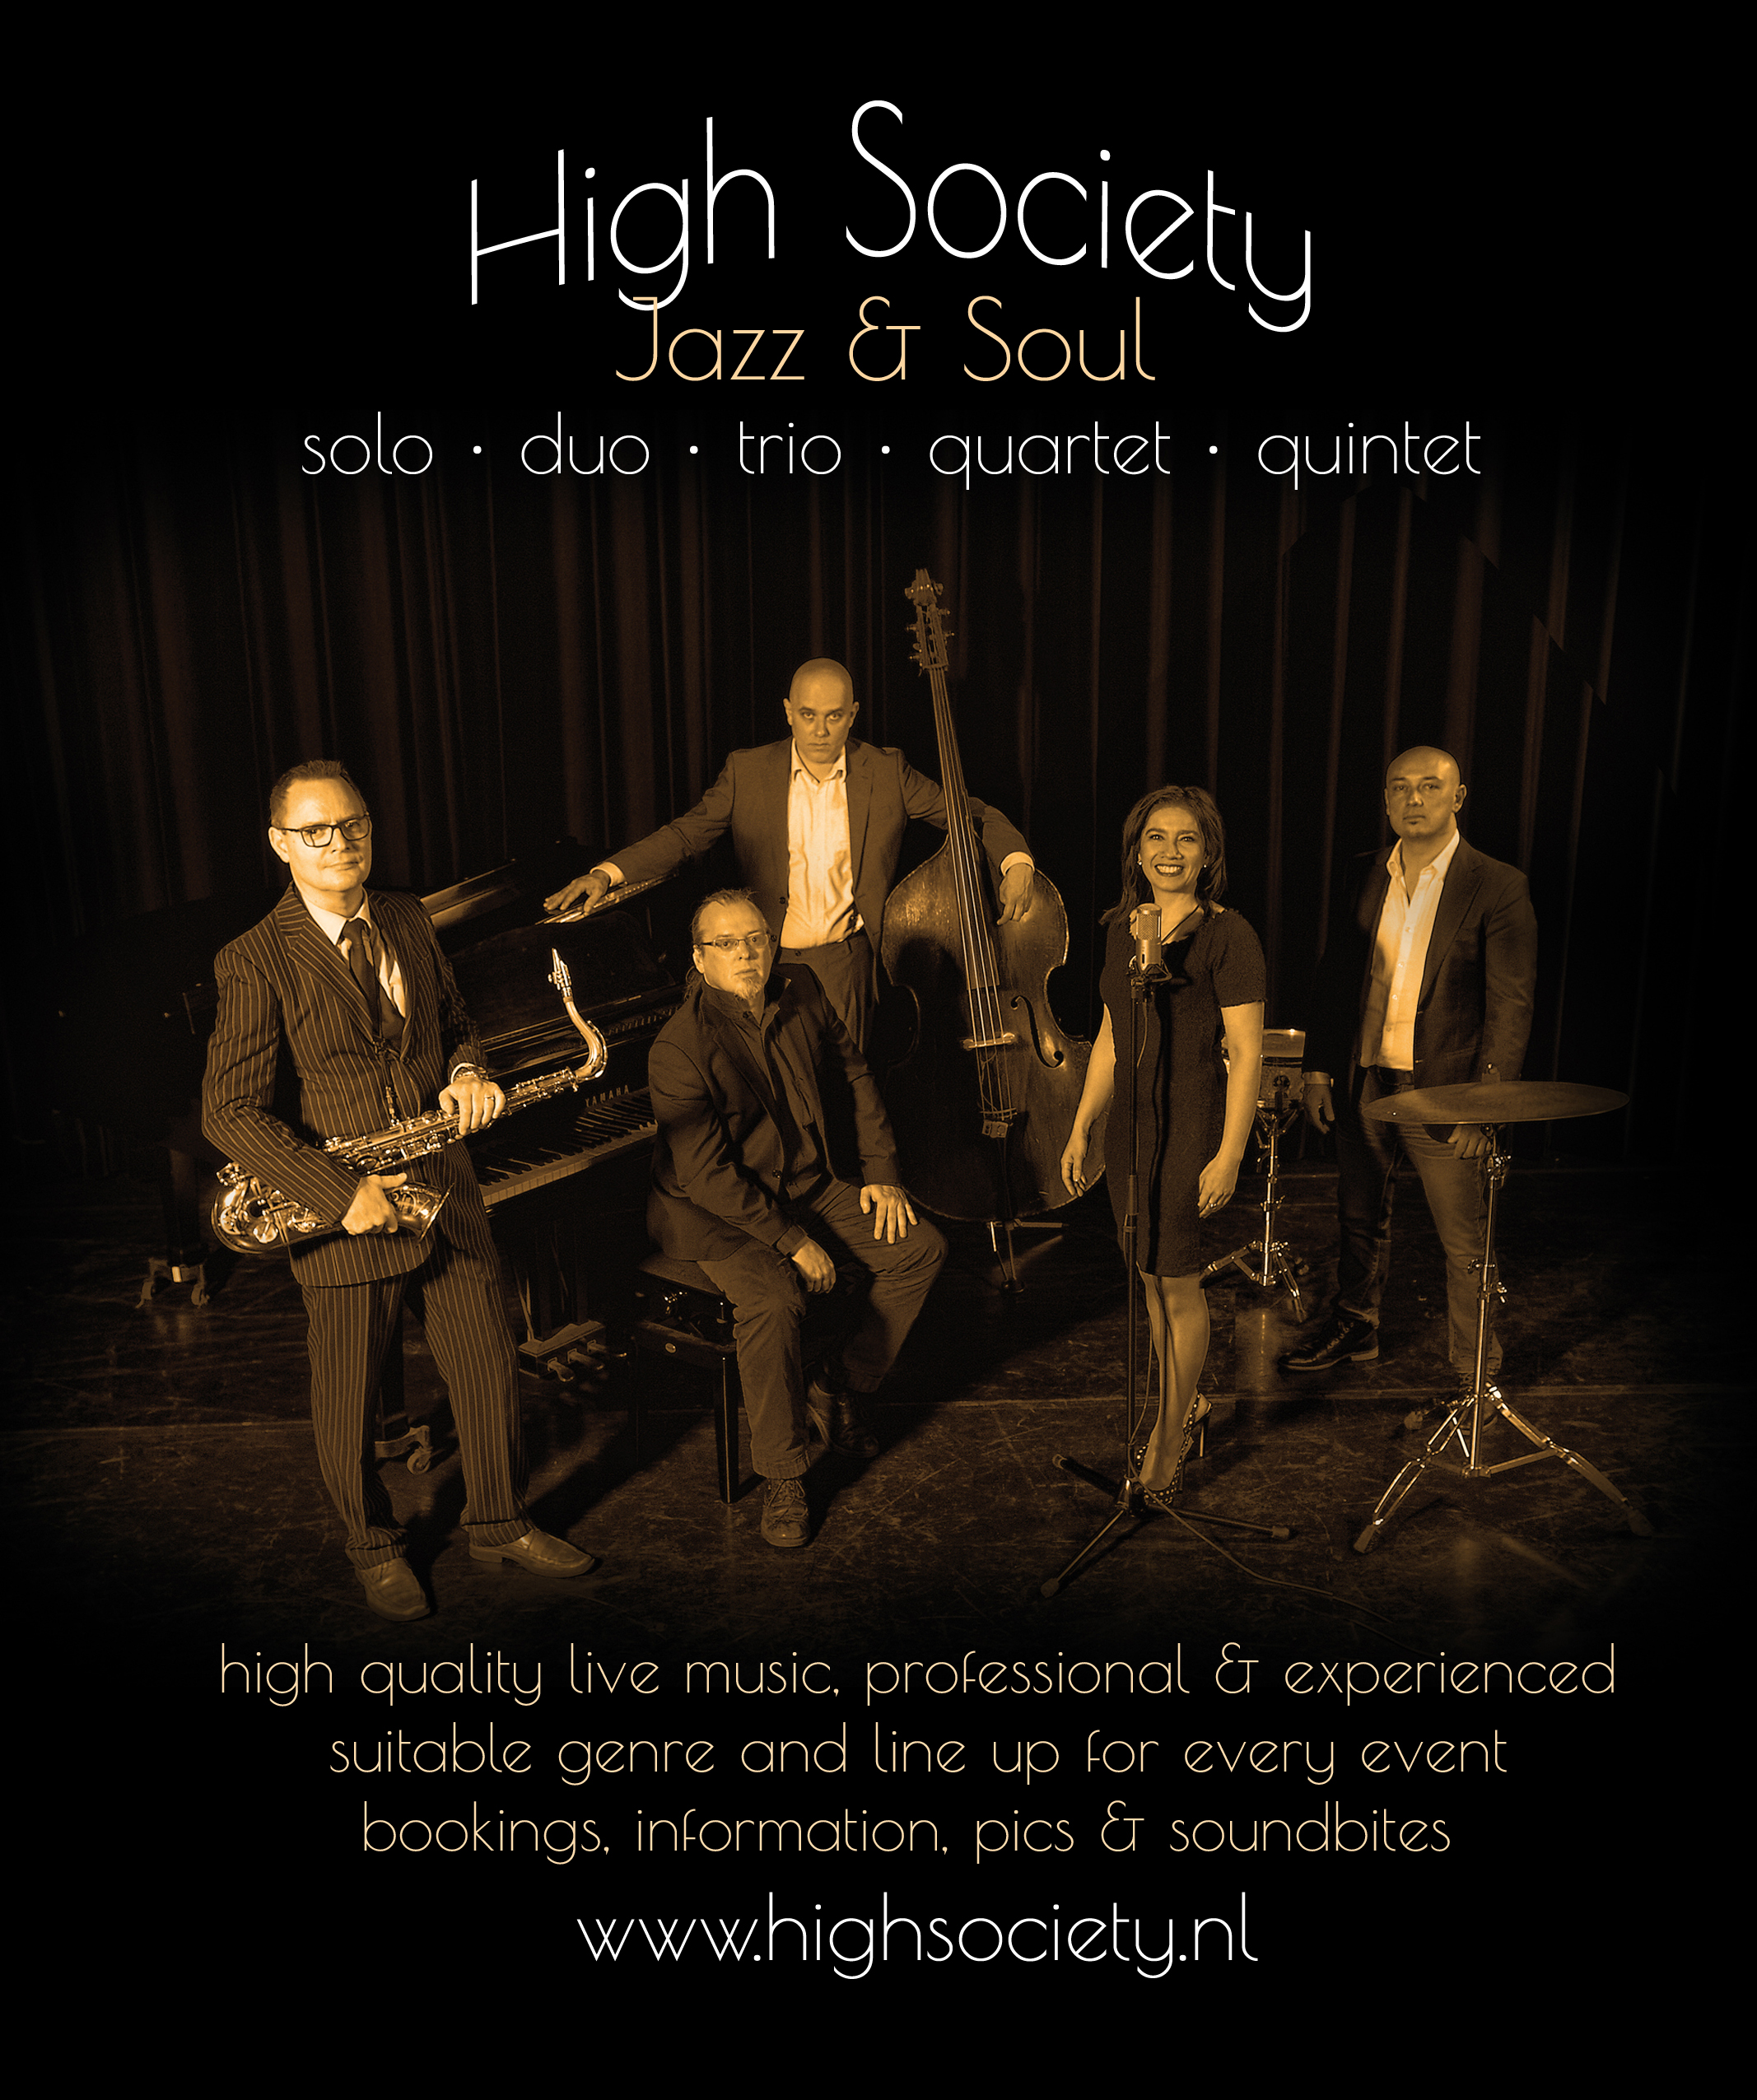 HIGH SOCIETY JAZZ QUINTET 72dpitekst